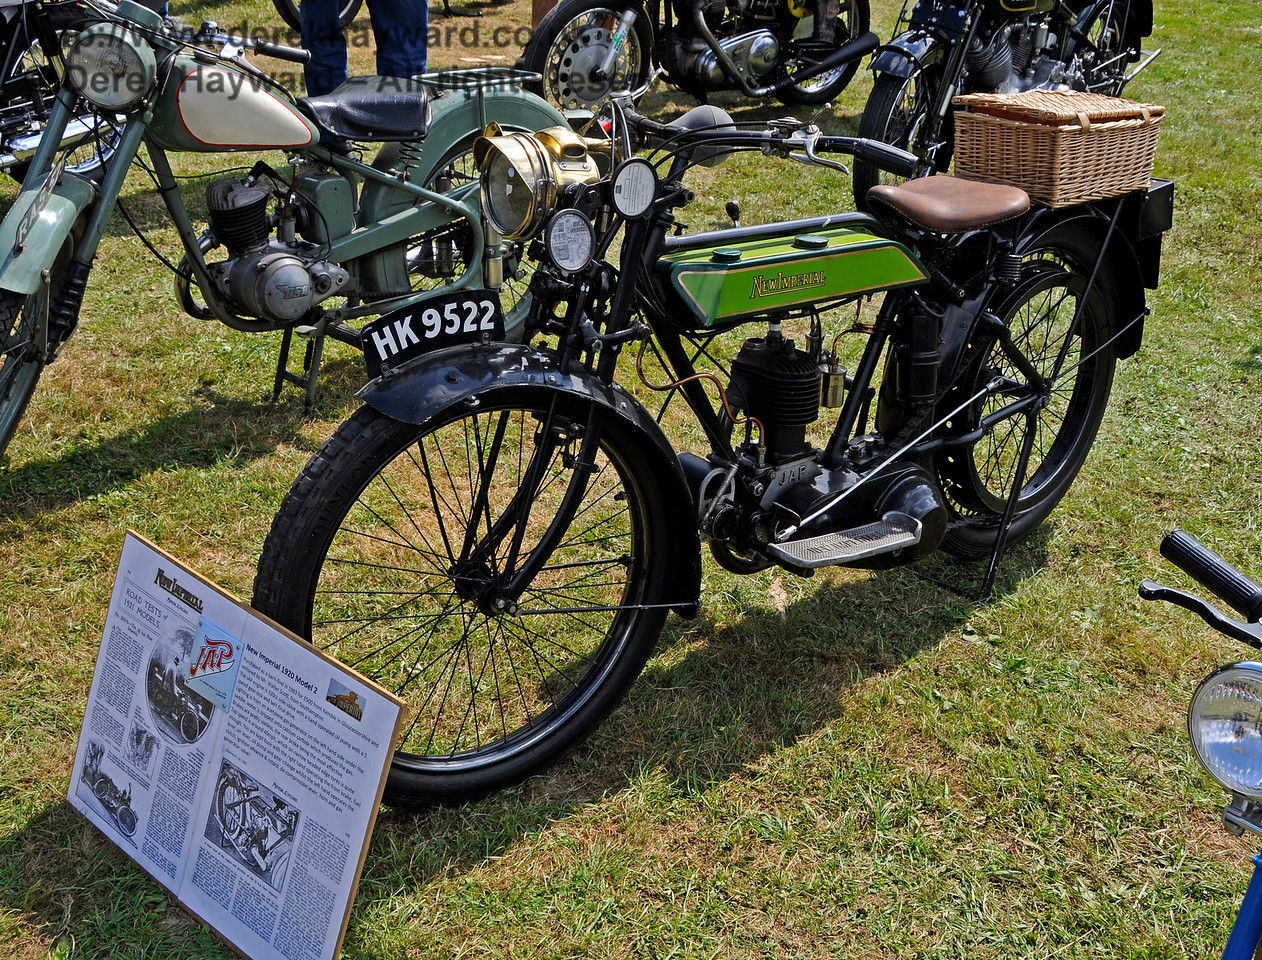 Best Pre-War Motor Cycle was a New Imperial, HK9522, owned by Peter Scott.  Vintage Transport Weekend, Horsted Keynes, 14.08.2016  16177